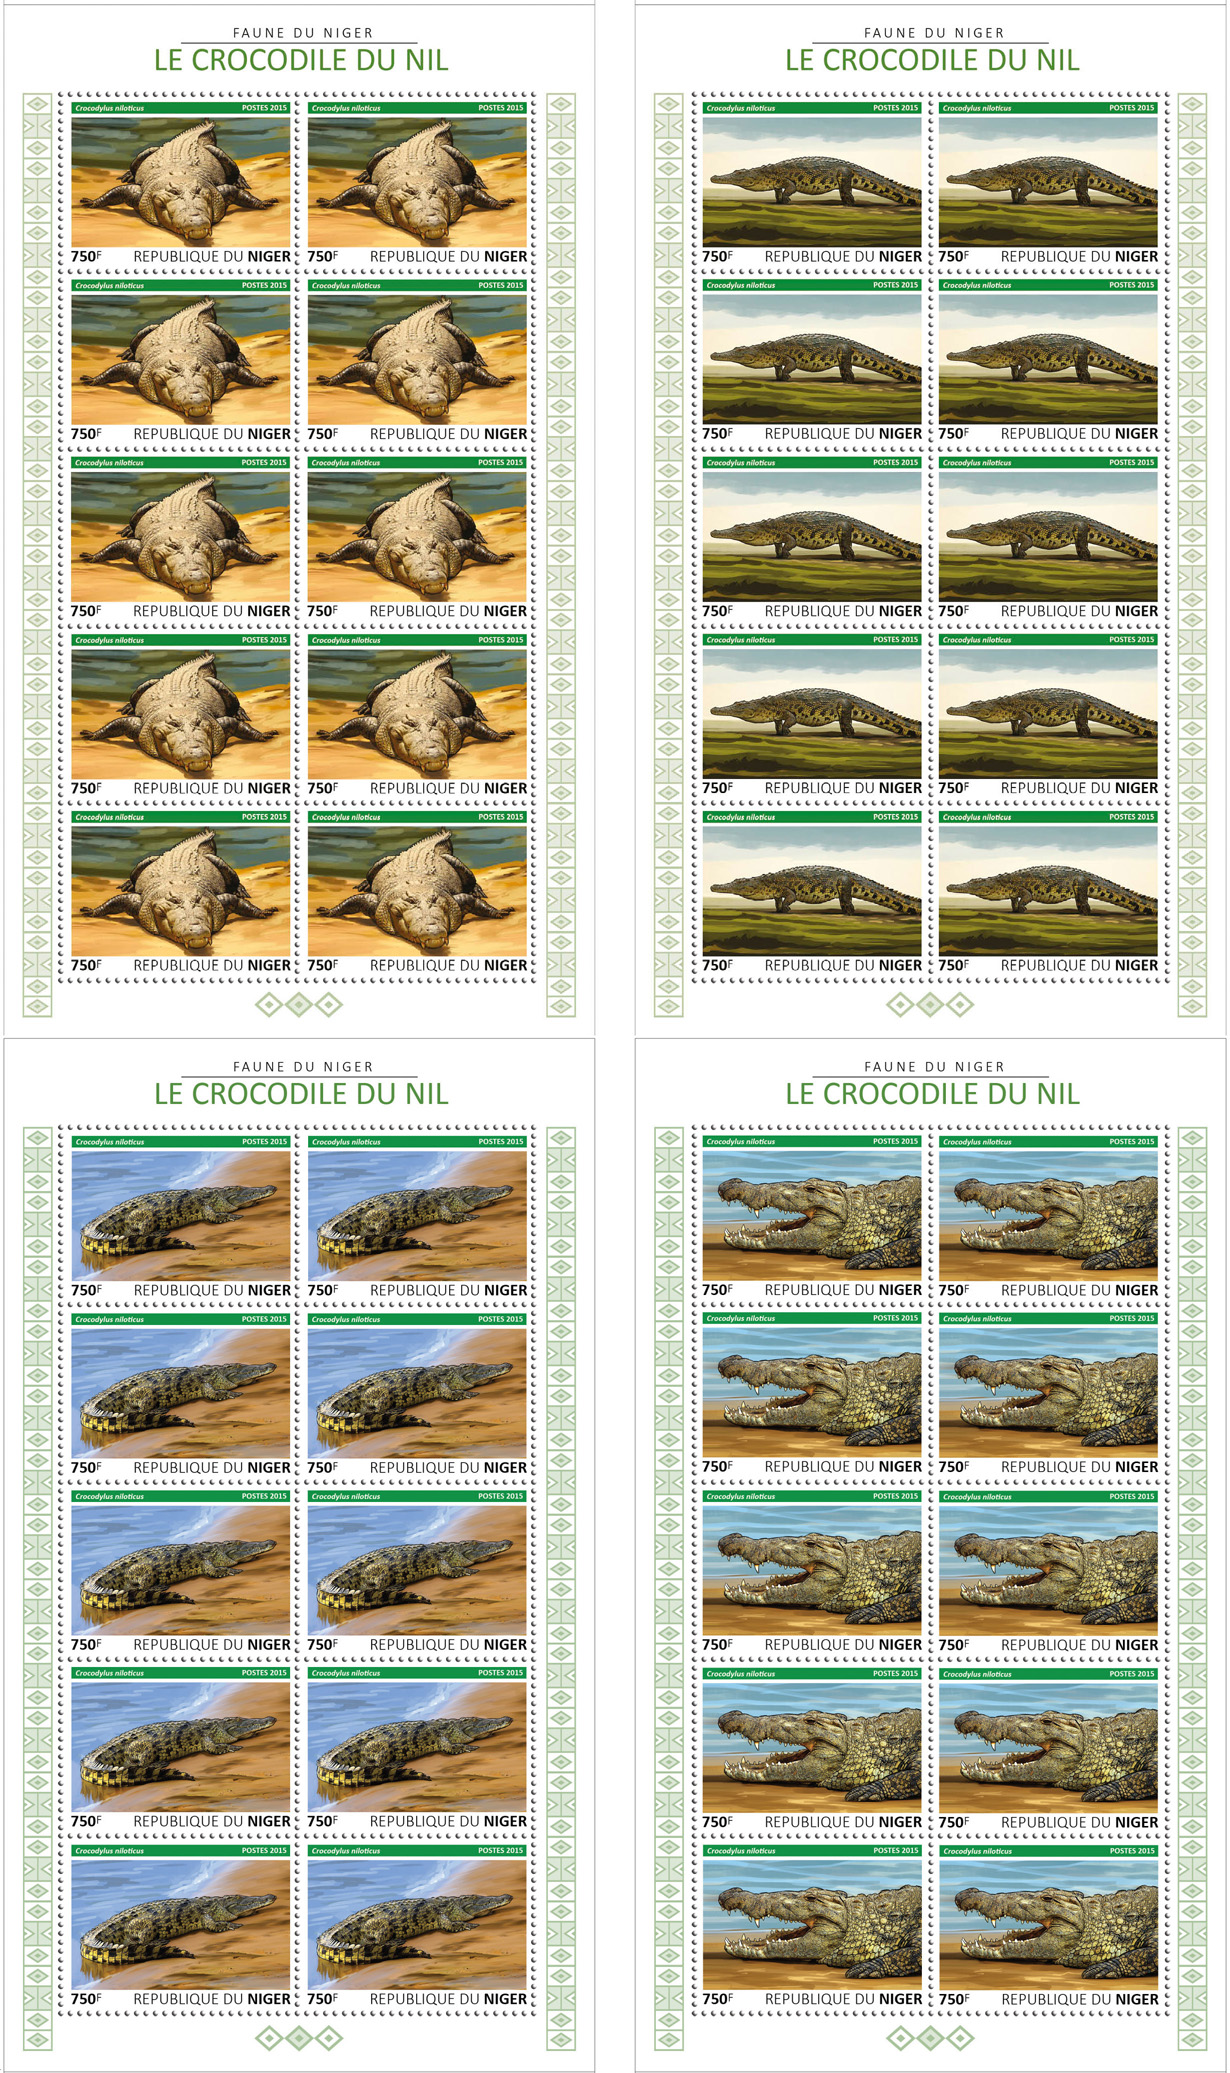 Crocodile 4x10v - Issue of Niger postage stamps